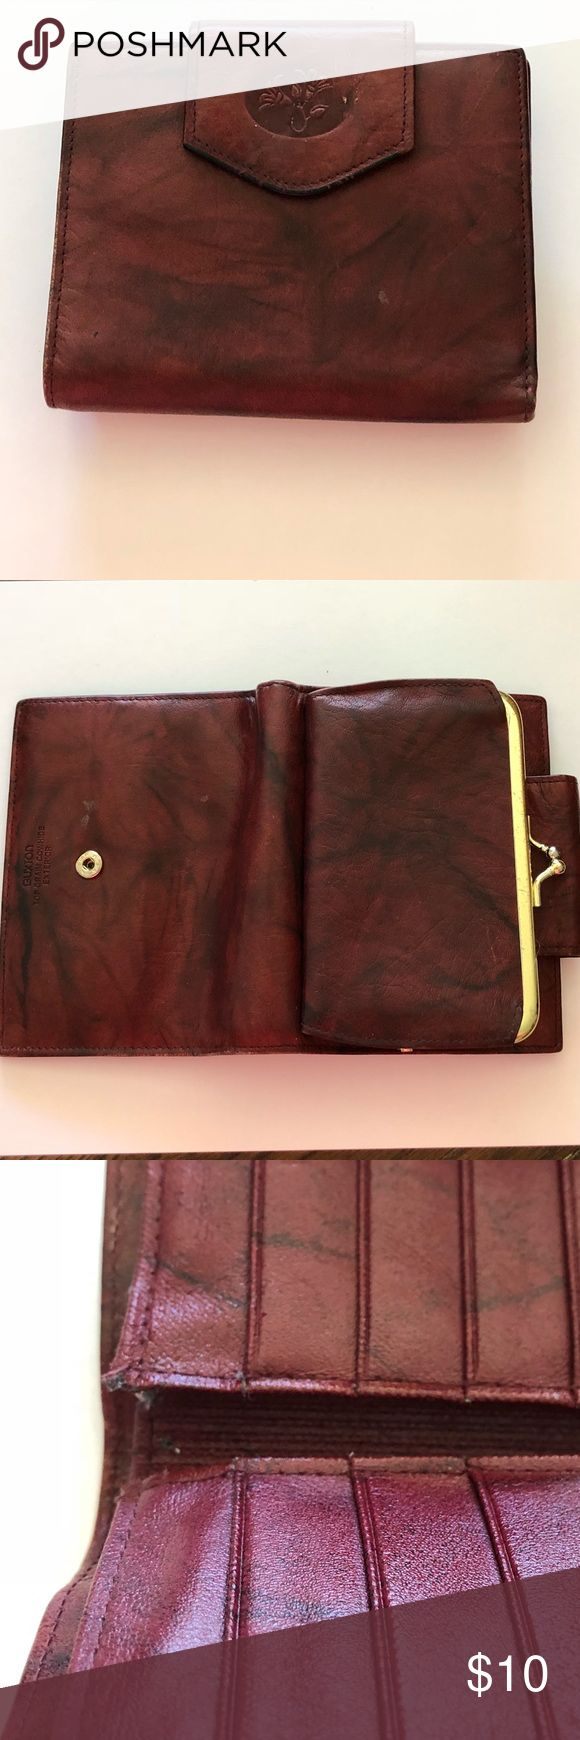 """Buxton Wallet Buxton Wallet -  4"""" H x 5 L (closed)   👛  Heiress  👛 Top Grain Cowhide  👛 Change Purse  👛 8 Card Slots to include ID window   Good shape - see small lift by credit card slot not noticeable when using. BUXTON Bags Wallets"""